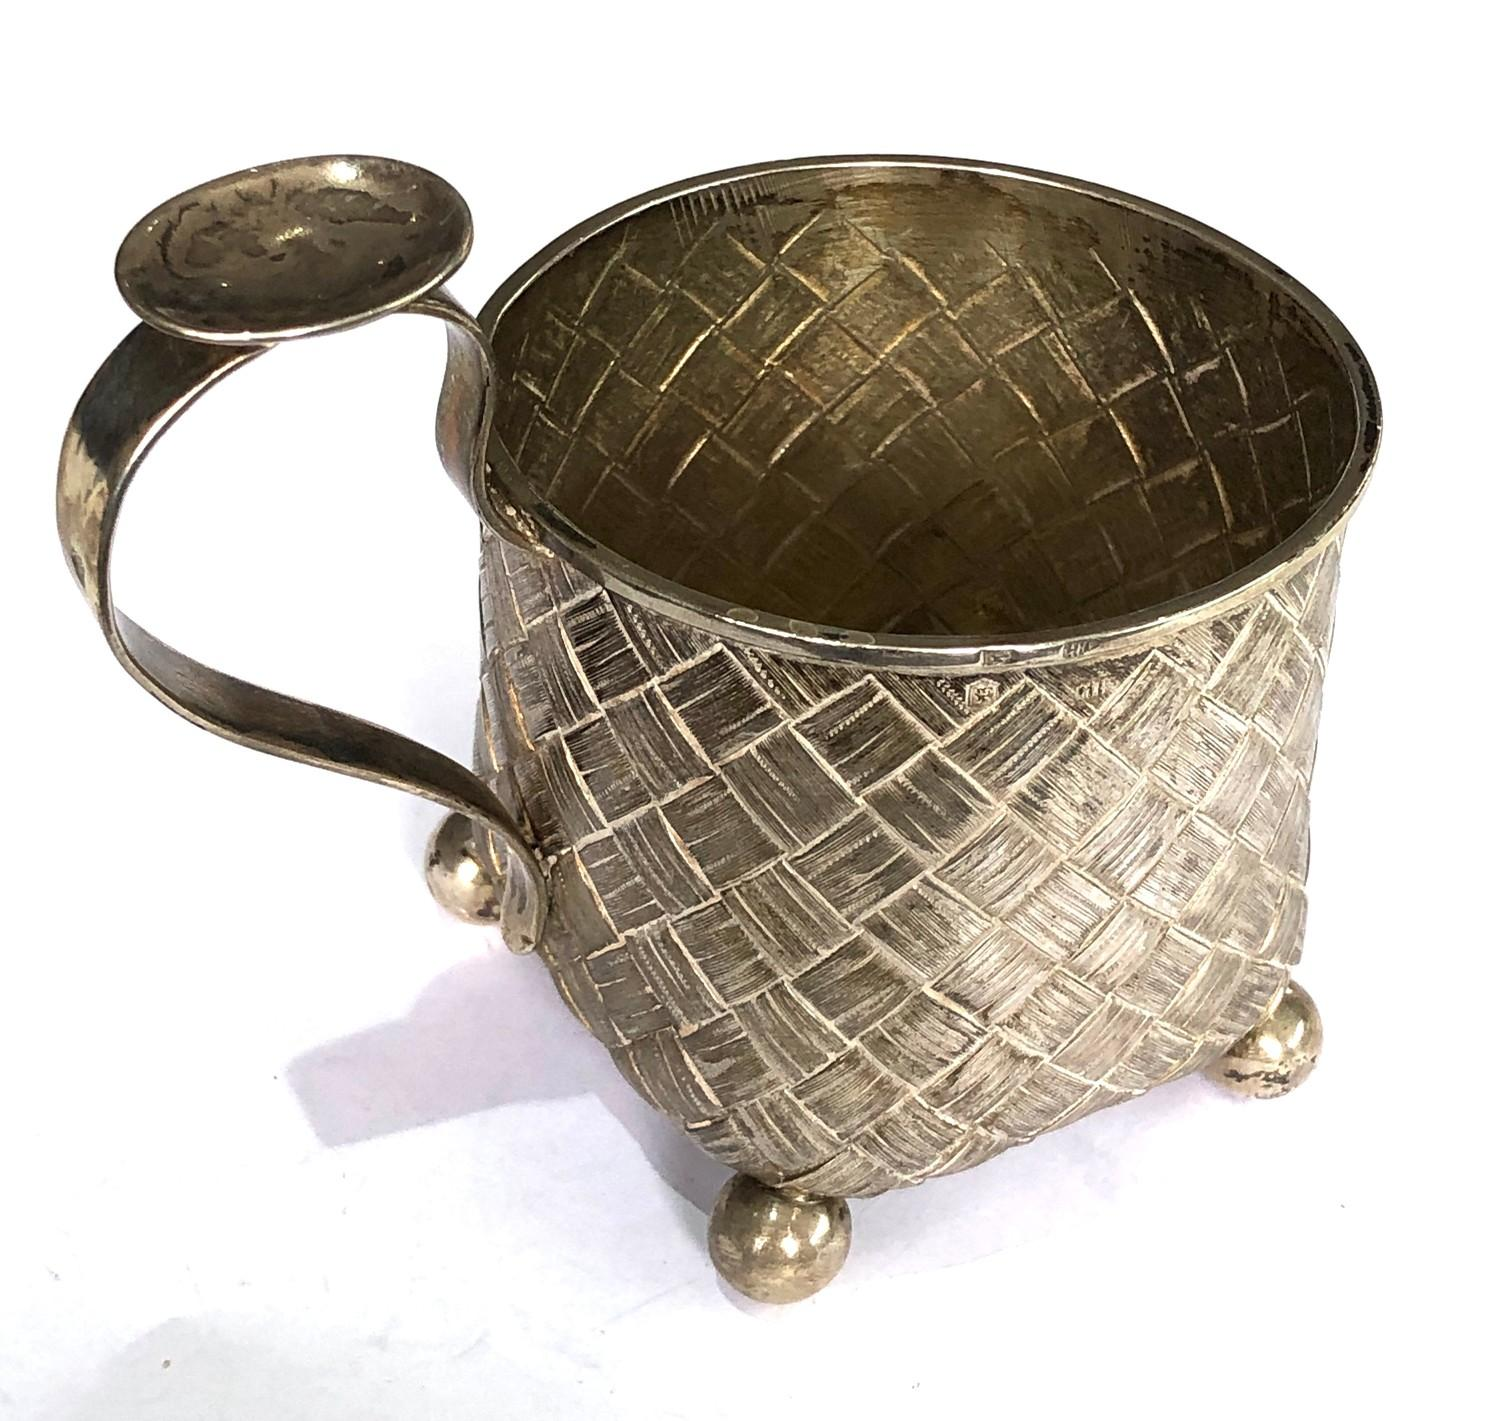 Antique 1877 Russian silver cup lattice work design measures approx height 10cm cup dia 7.5cm full - Image 4 of 7